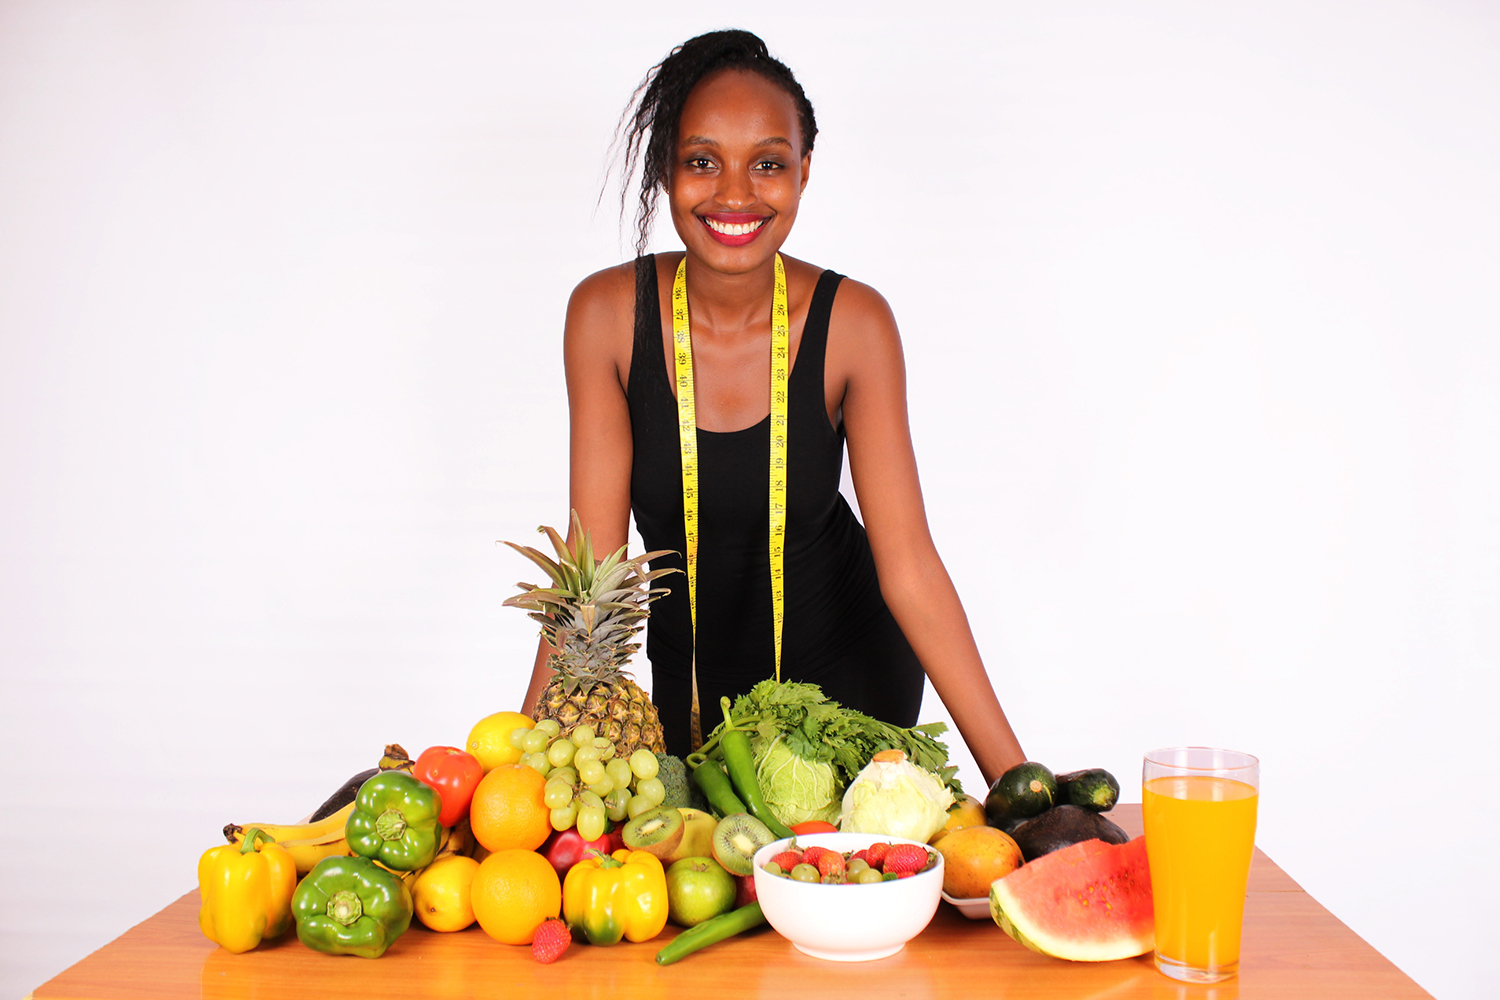 beautiful woman standing behind table with fruits and